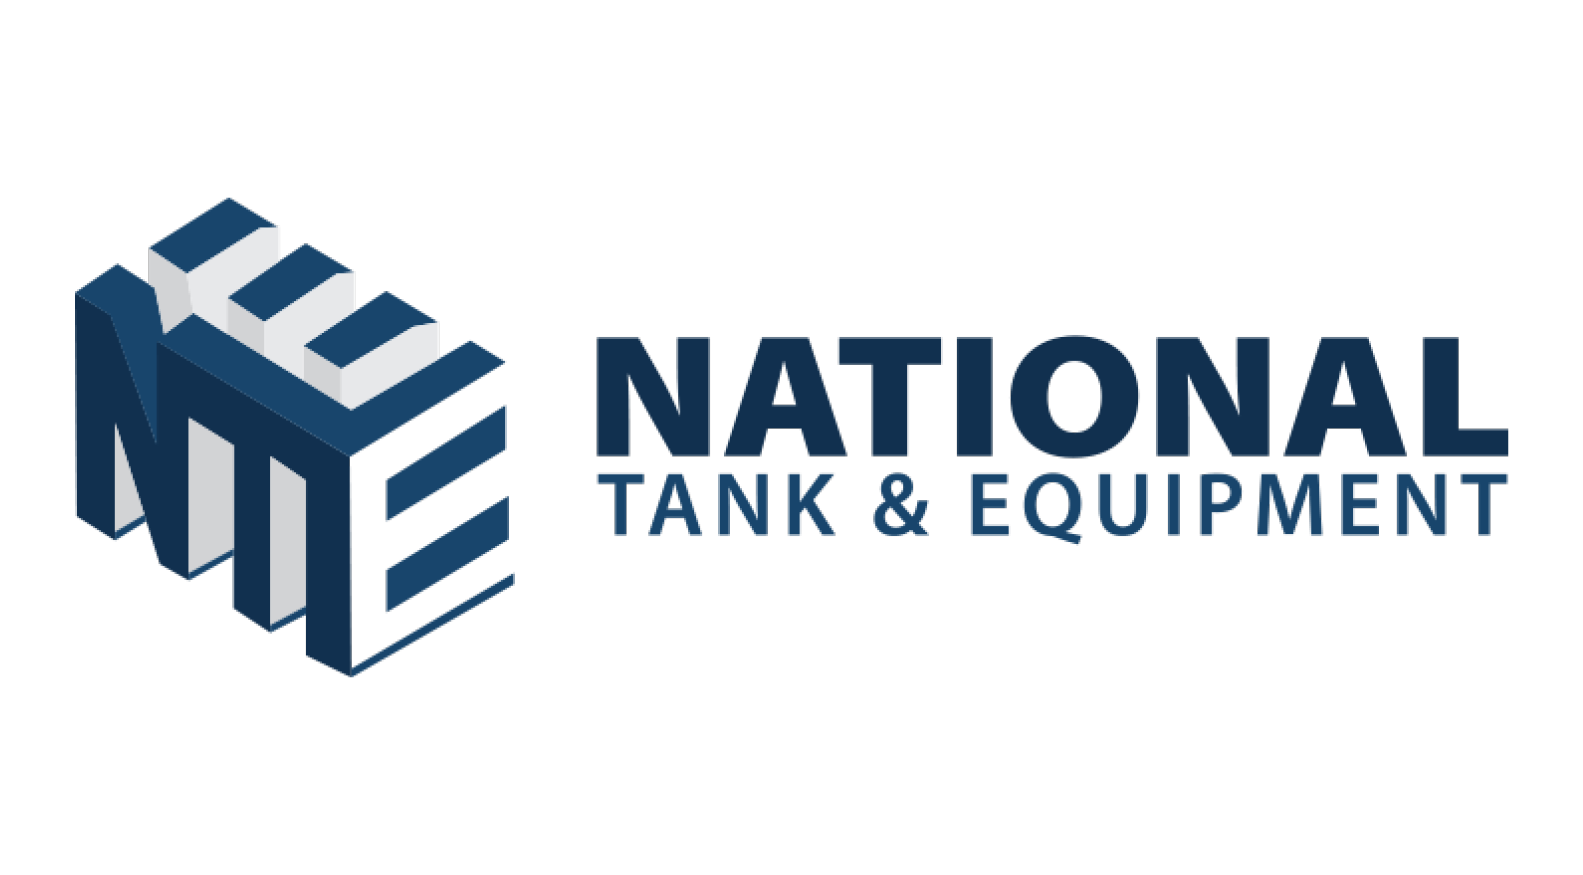 INVESTMENT PORTFOLIO - NATIONAL TANK & EQUIPMENT